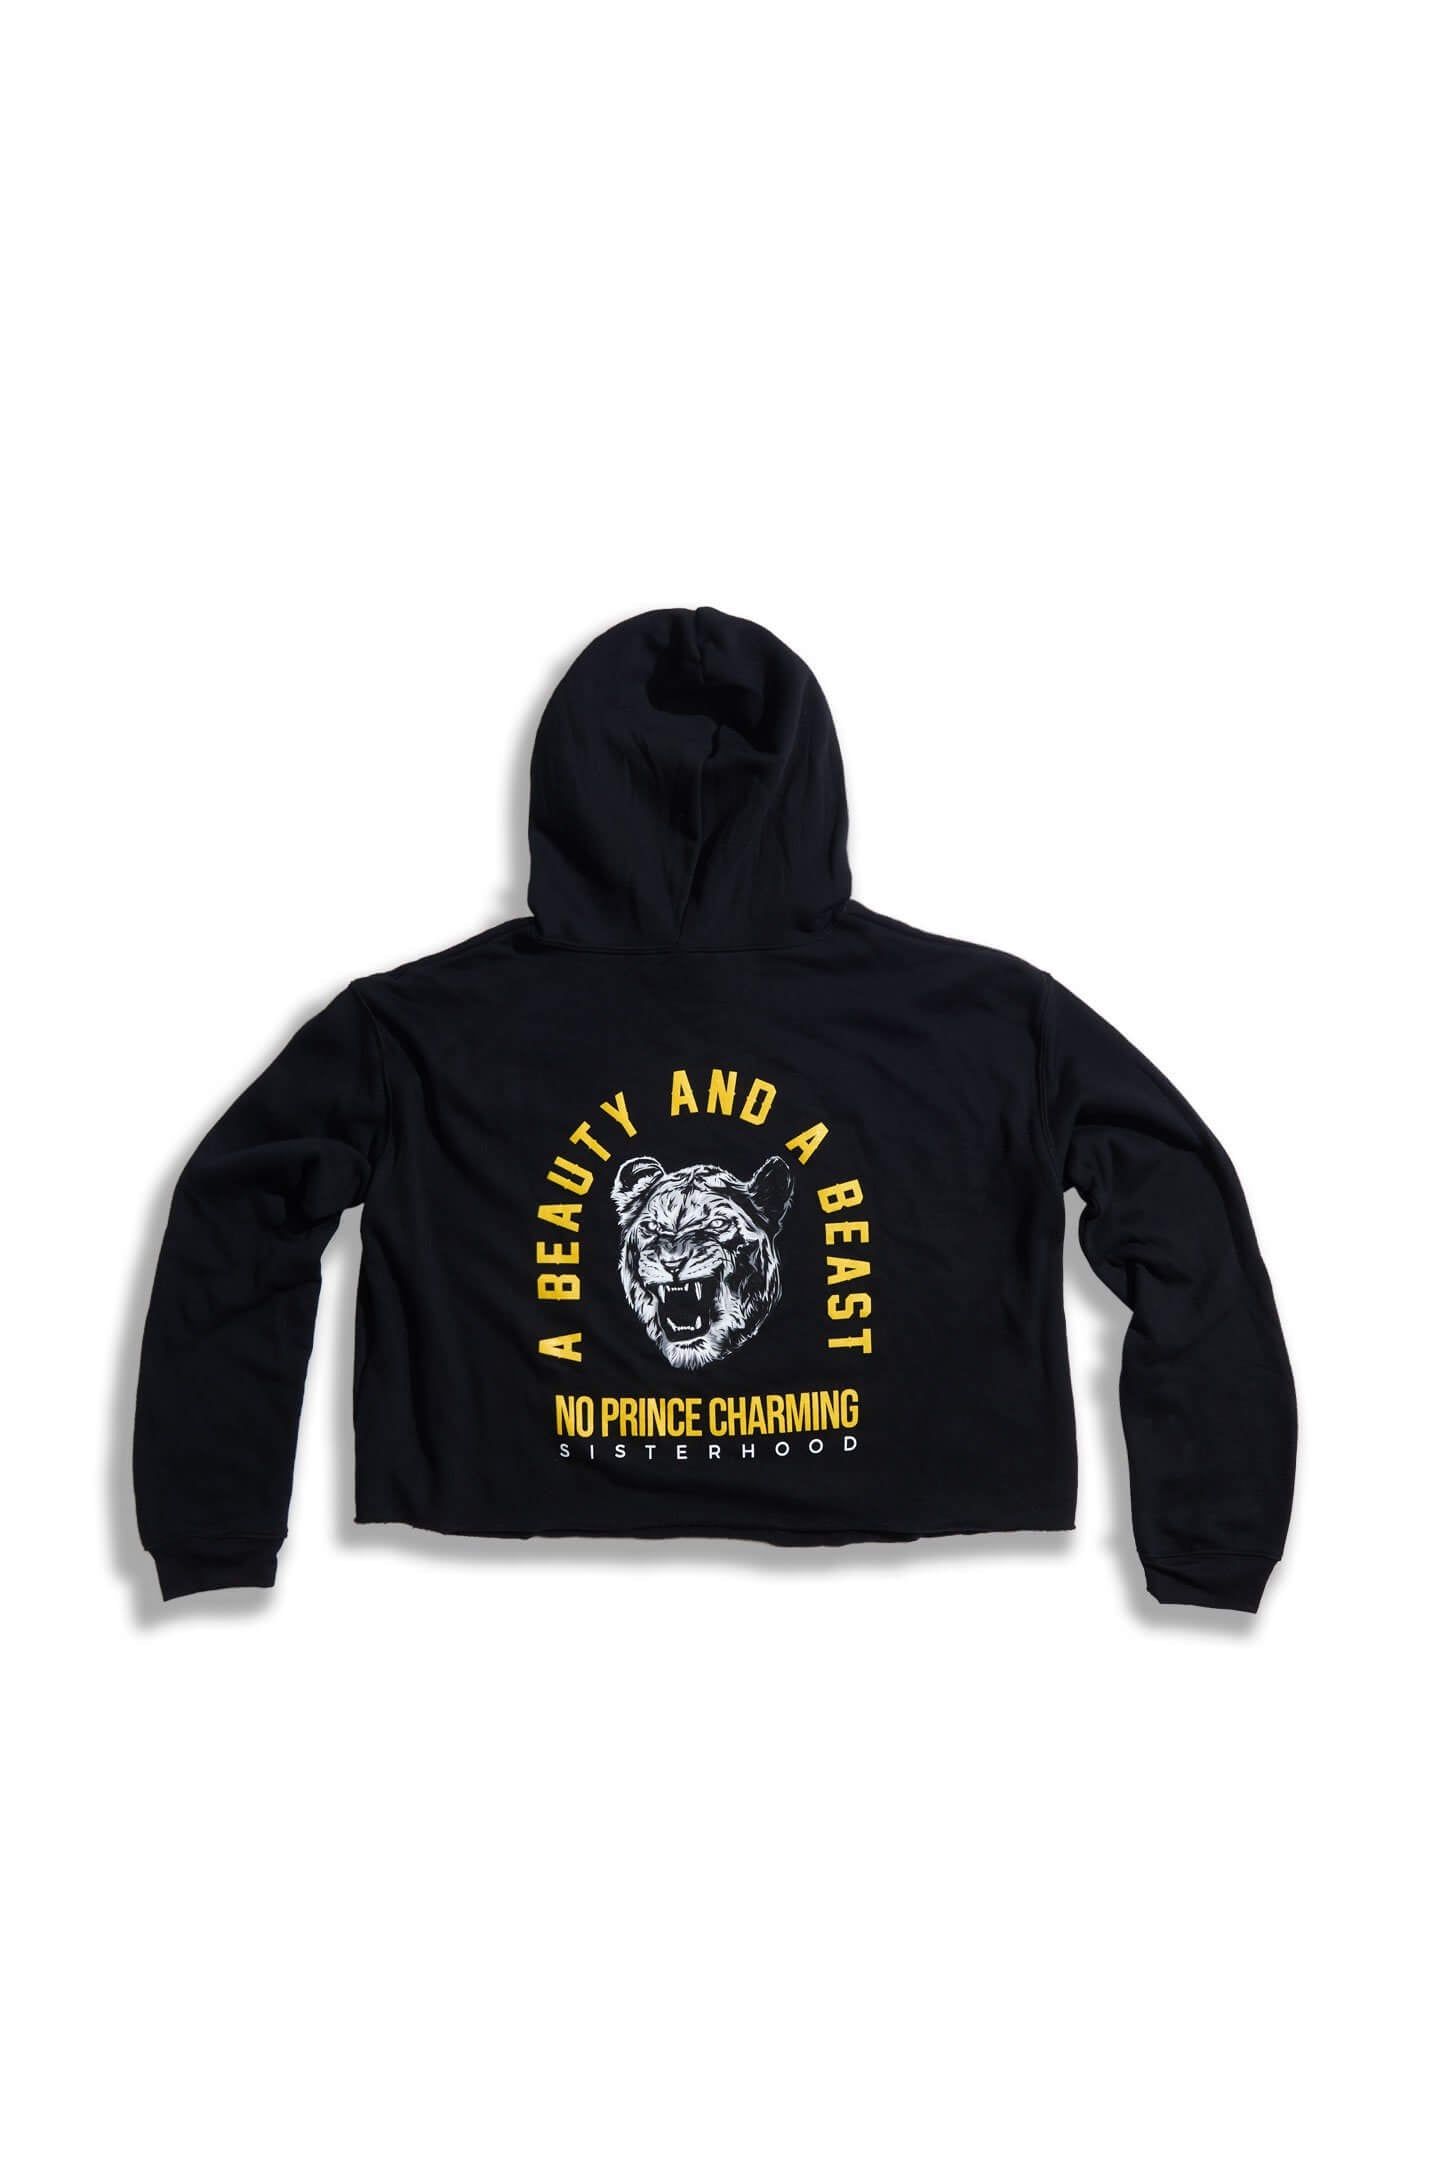 A BEAUTY AND A BEAST CROP HOODIE - BLACK